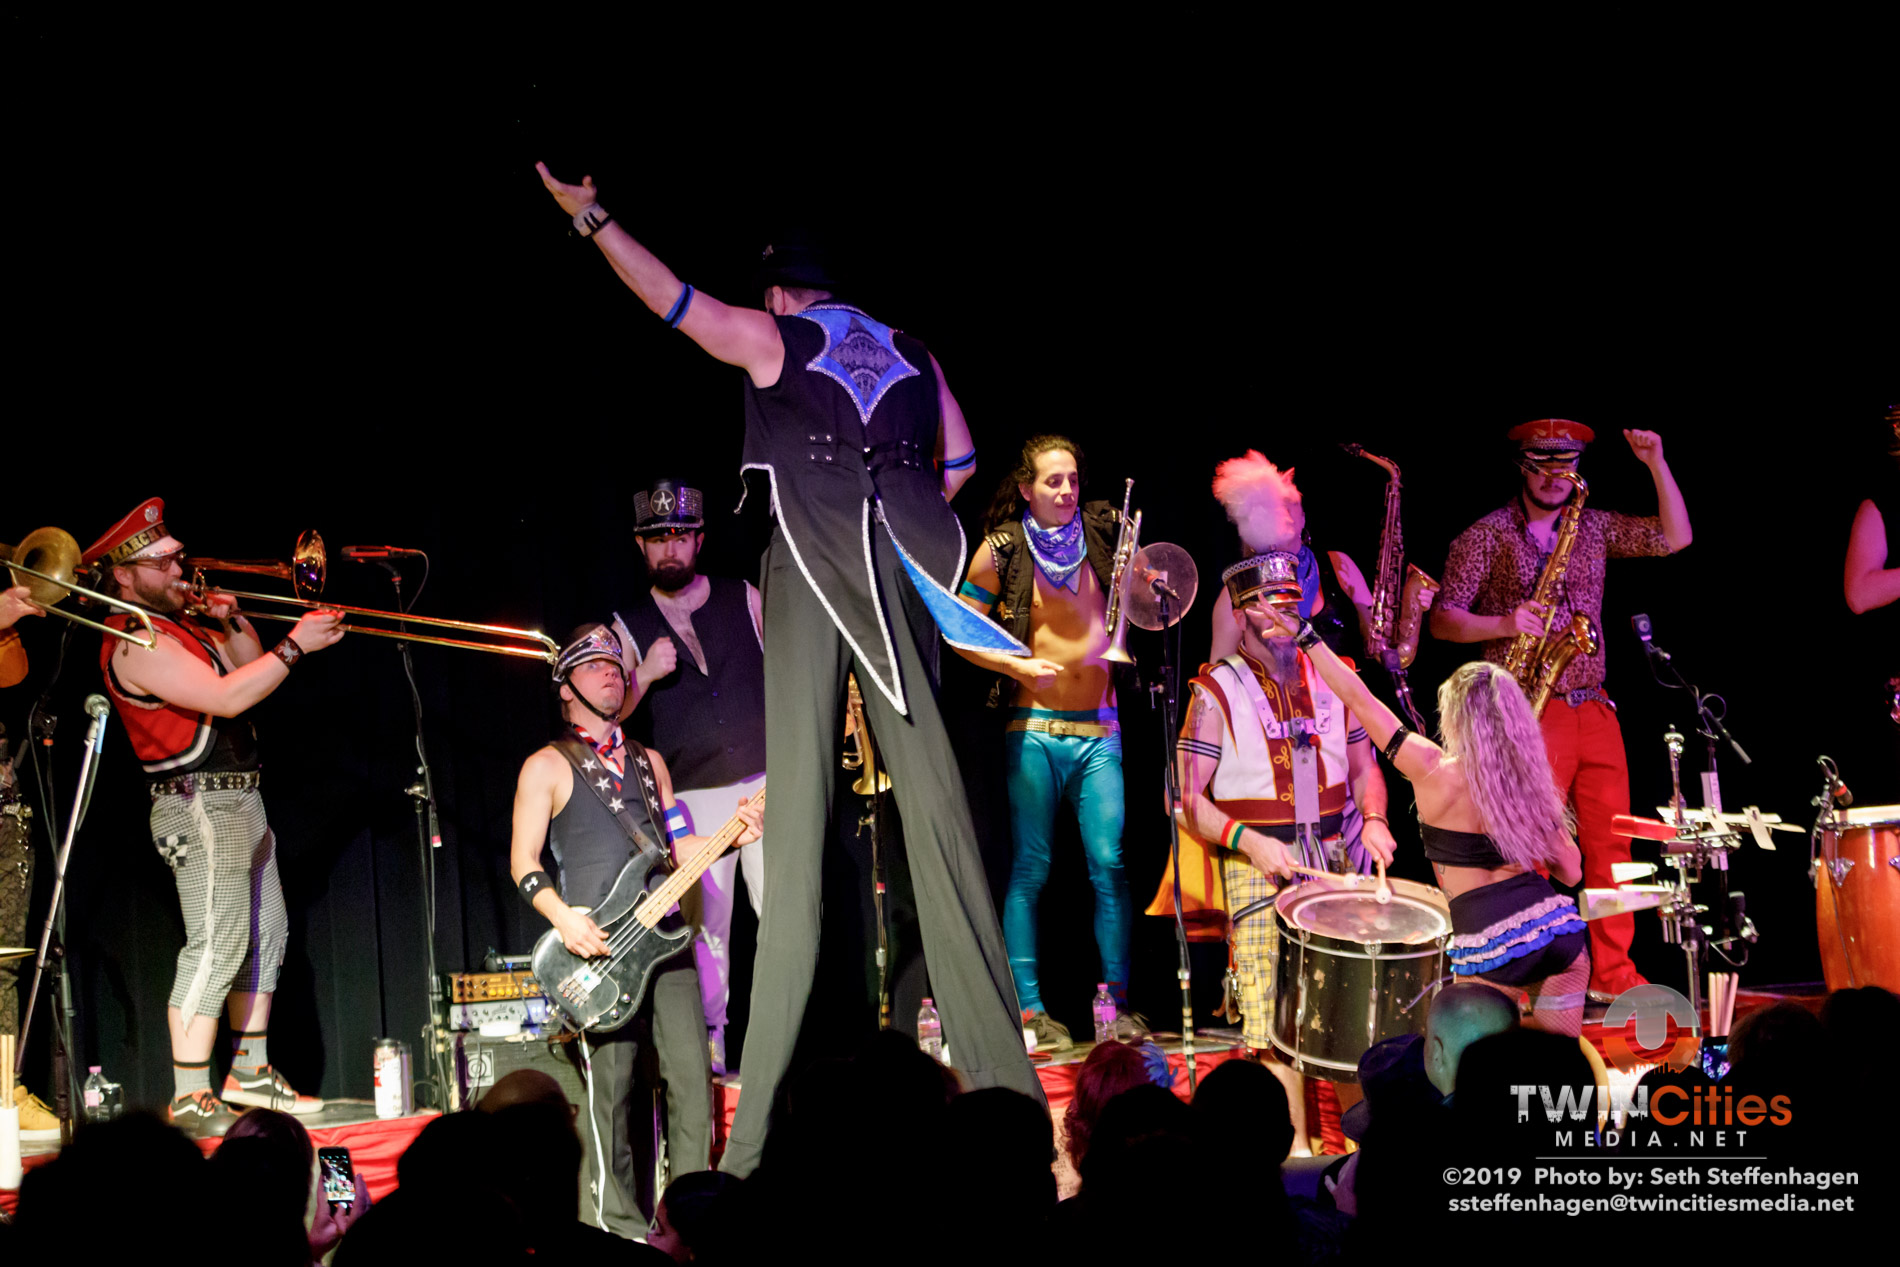 March 15, 2019 - Minneapolis, Minnesota, United States - MarchFourth live in concert at the Cedar Cultural Center along with Orkestar Biz Ime as the openers.(Photo by Seth Steffenhagen/Steffenhagen Photography)